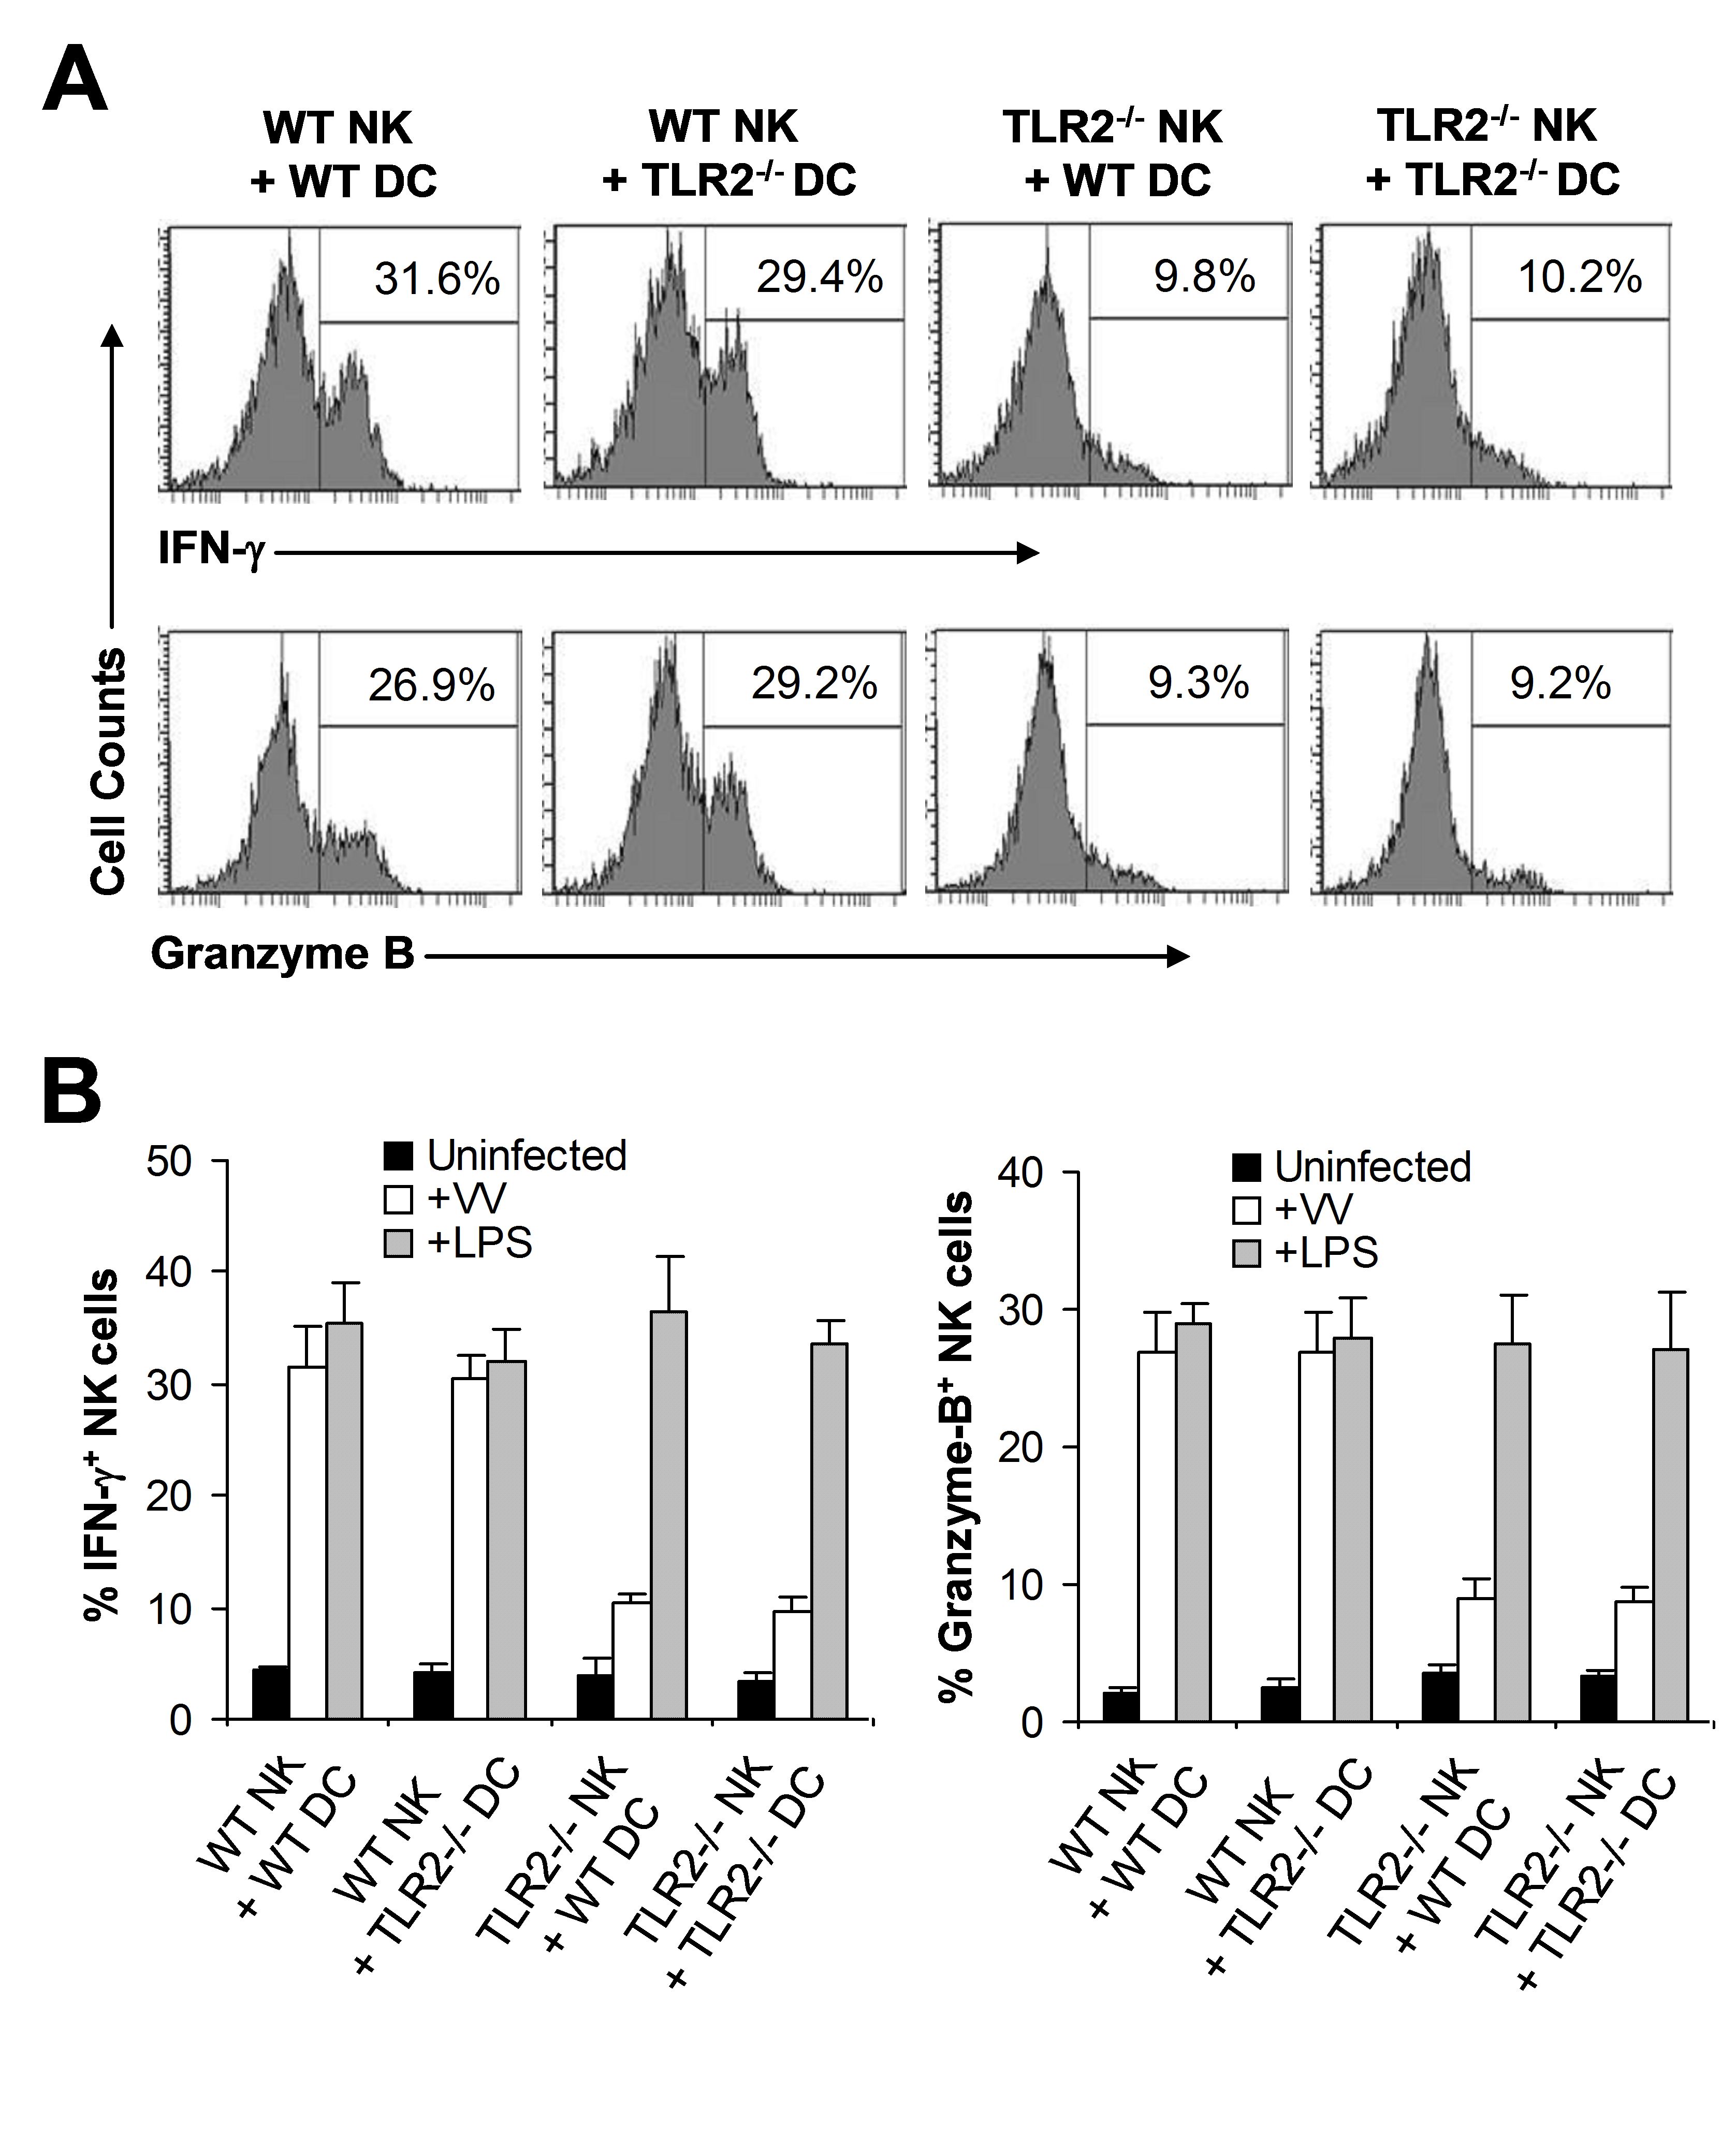 TLR2 signaling on NK cells, but not on DCs, is required for NK cell activation to VV in vitro.